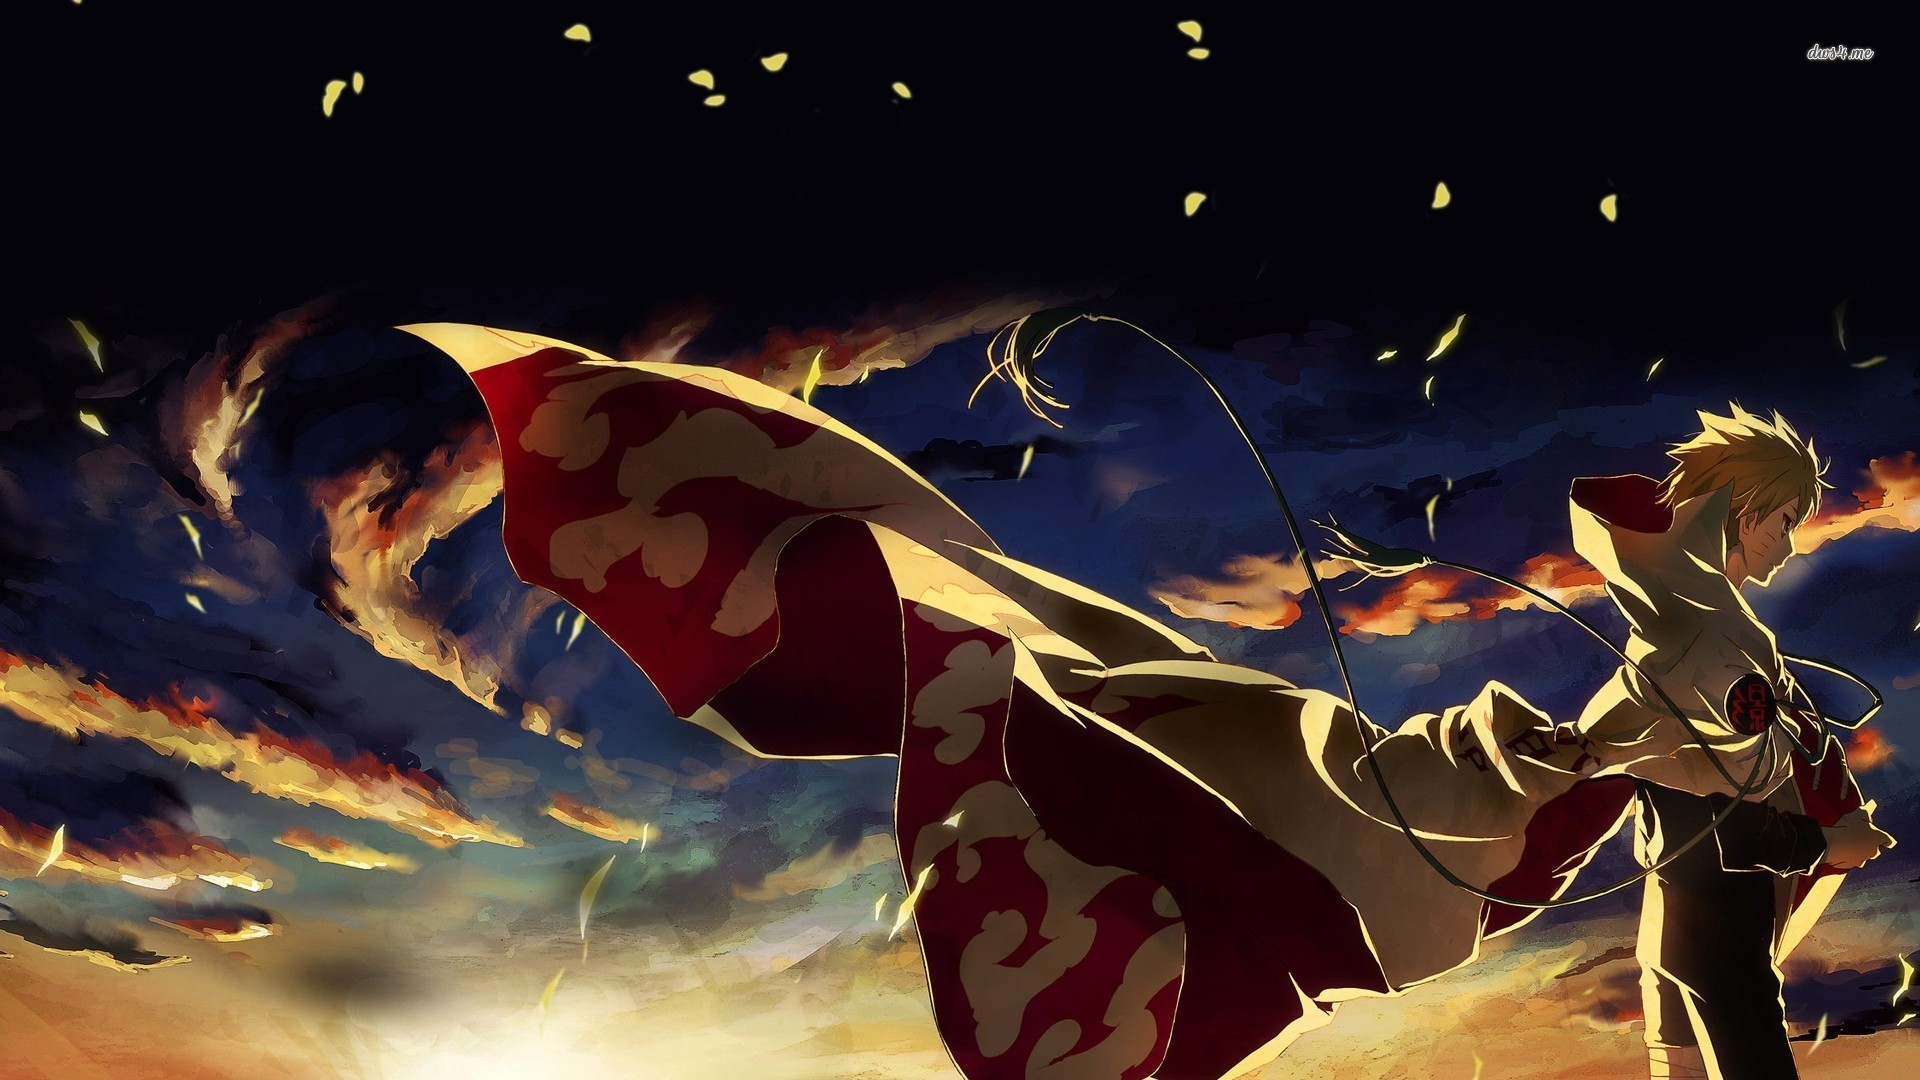 Good Wallpaper Naruto High Definition - 710509-download-cool-naruto-wallpapers-hd-1920x1080-retina  Gallery_845069.jpg